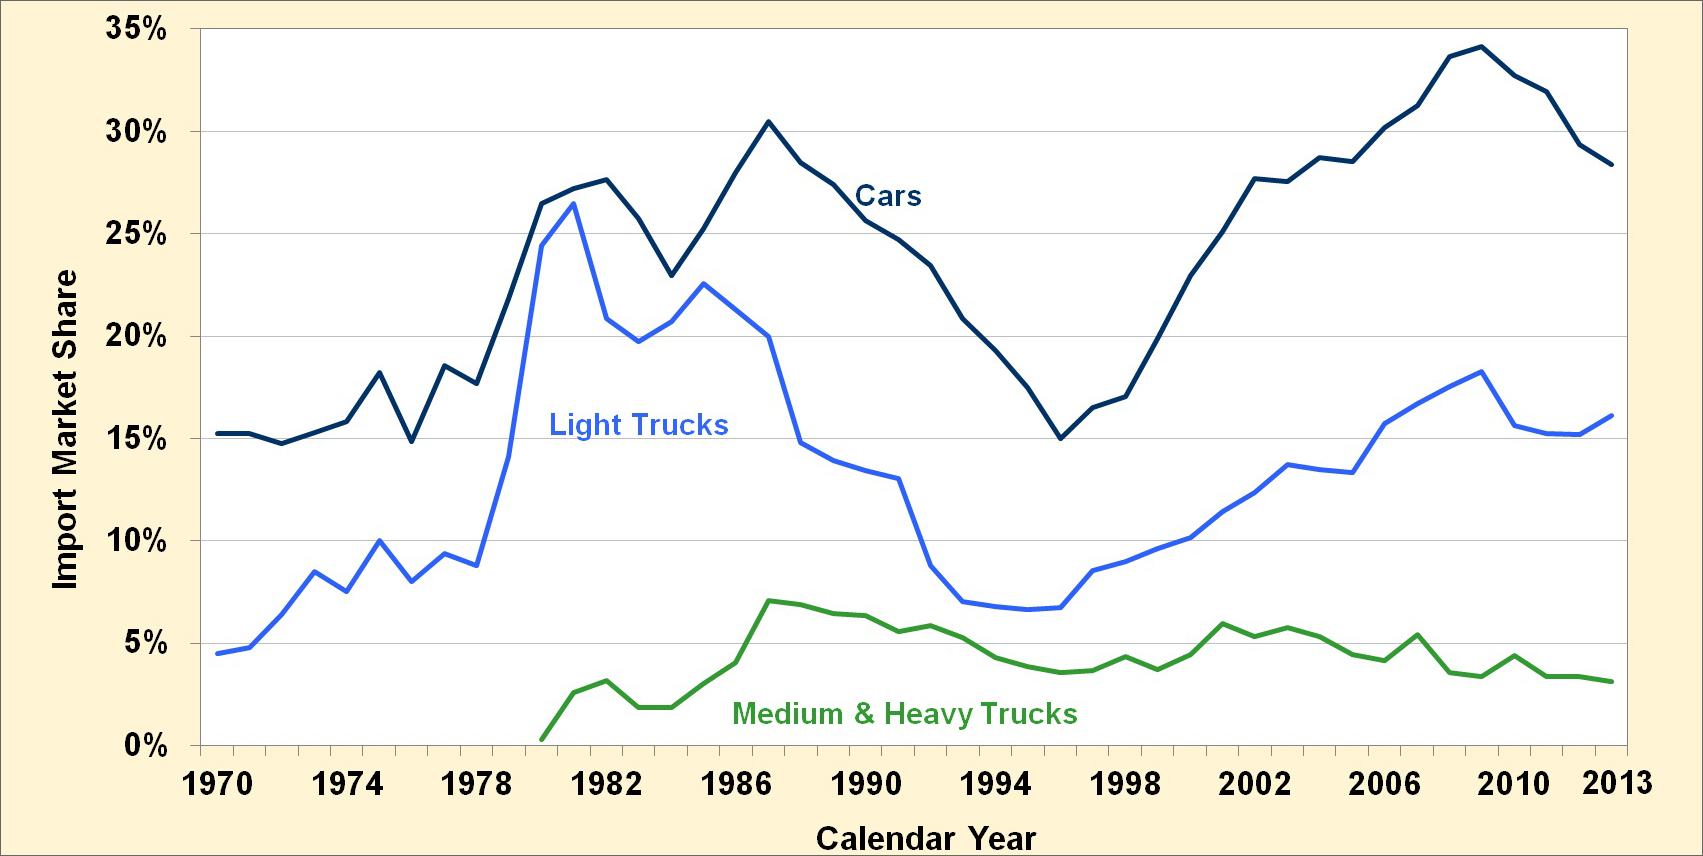 Import market share of cars, light trucks, and medium and heavy trucks from 1970 to 2013. See table for details.